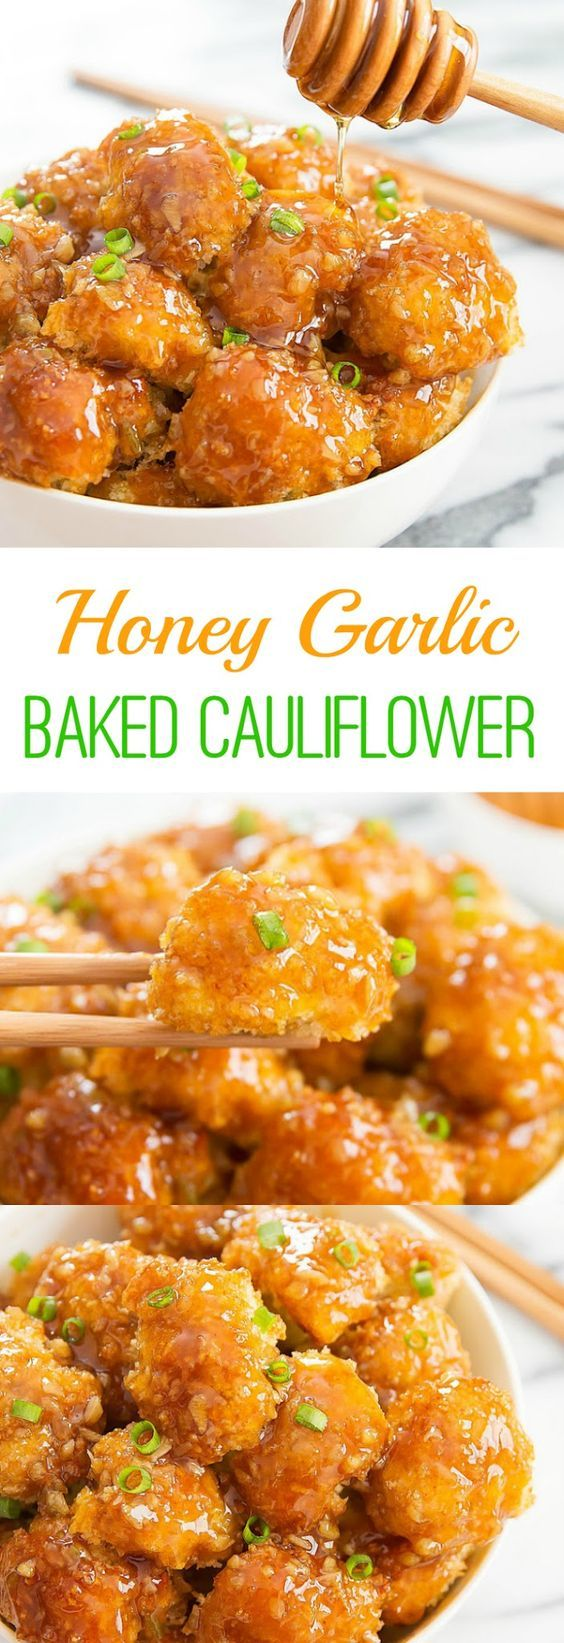 Crunchy baked breaded cauliflower with honey garlic sauce. It's an delicious…